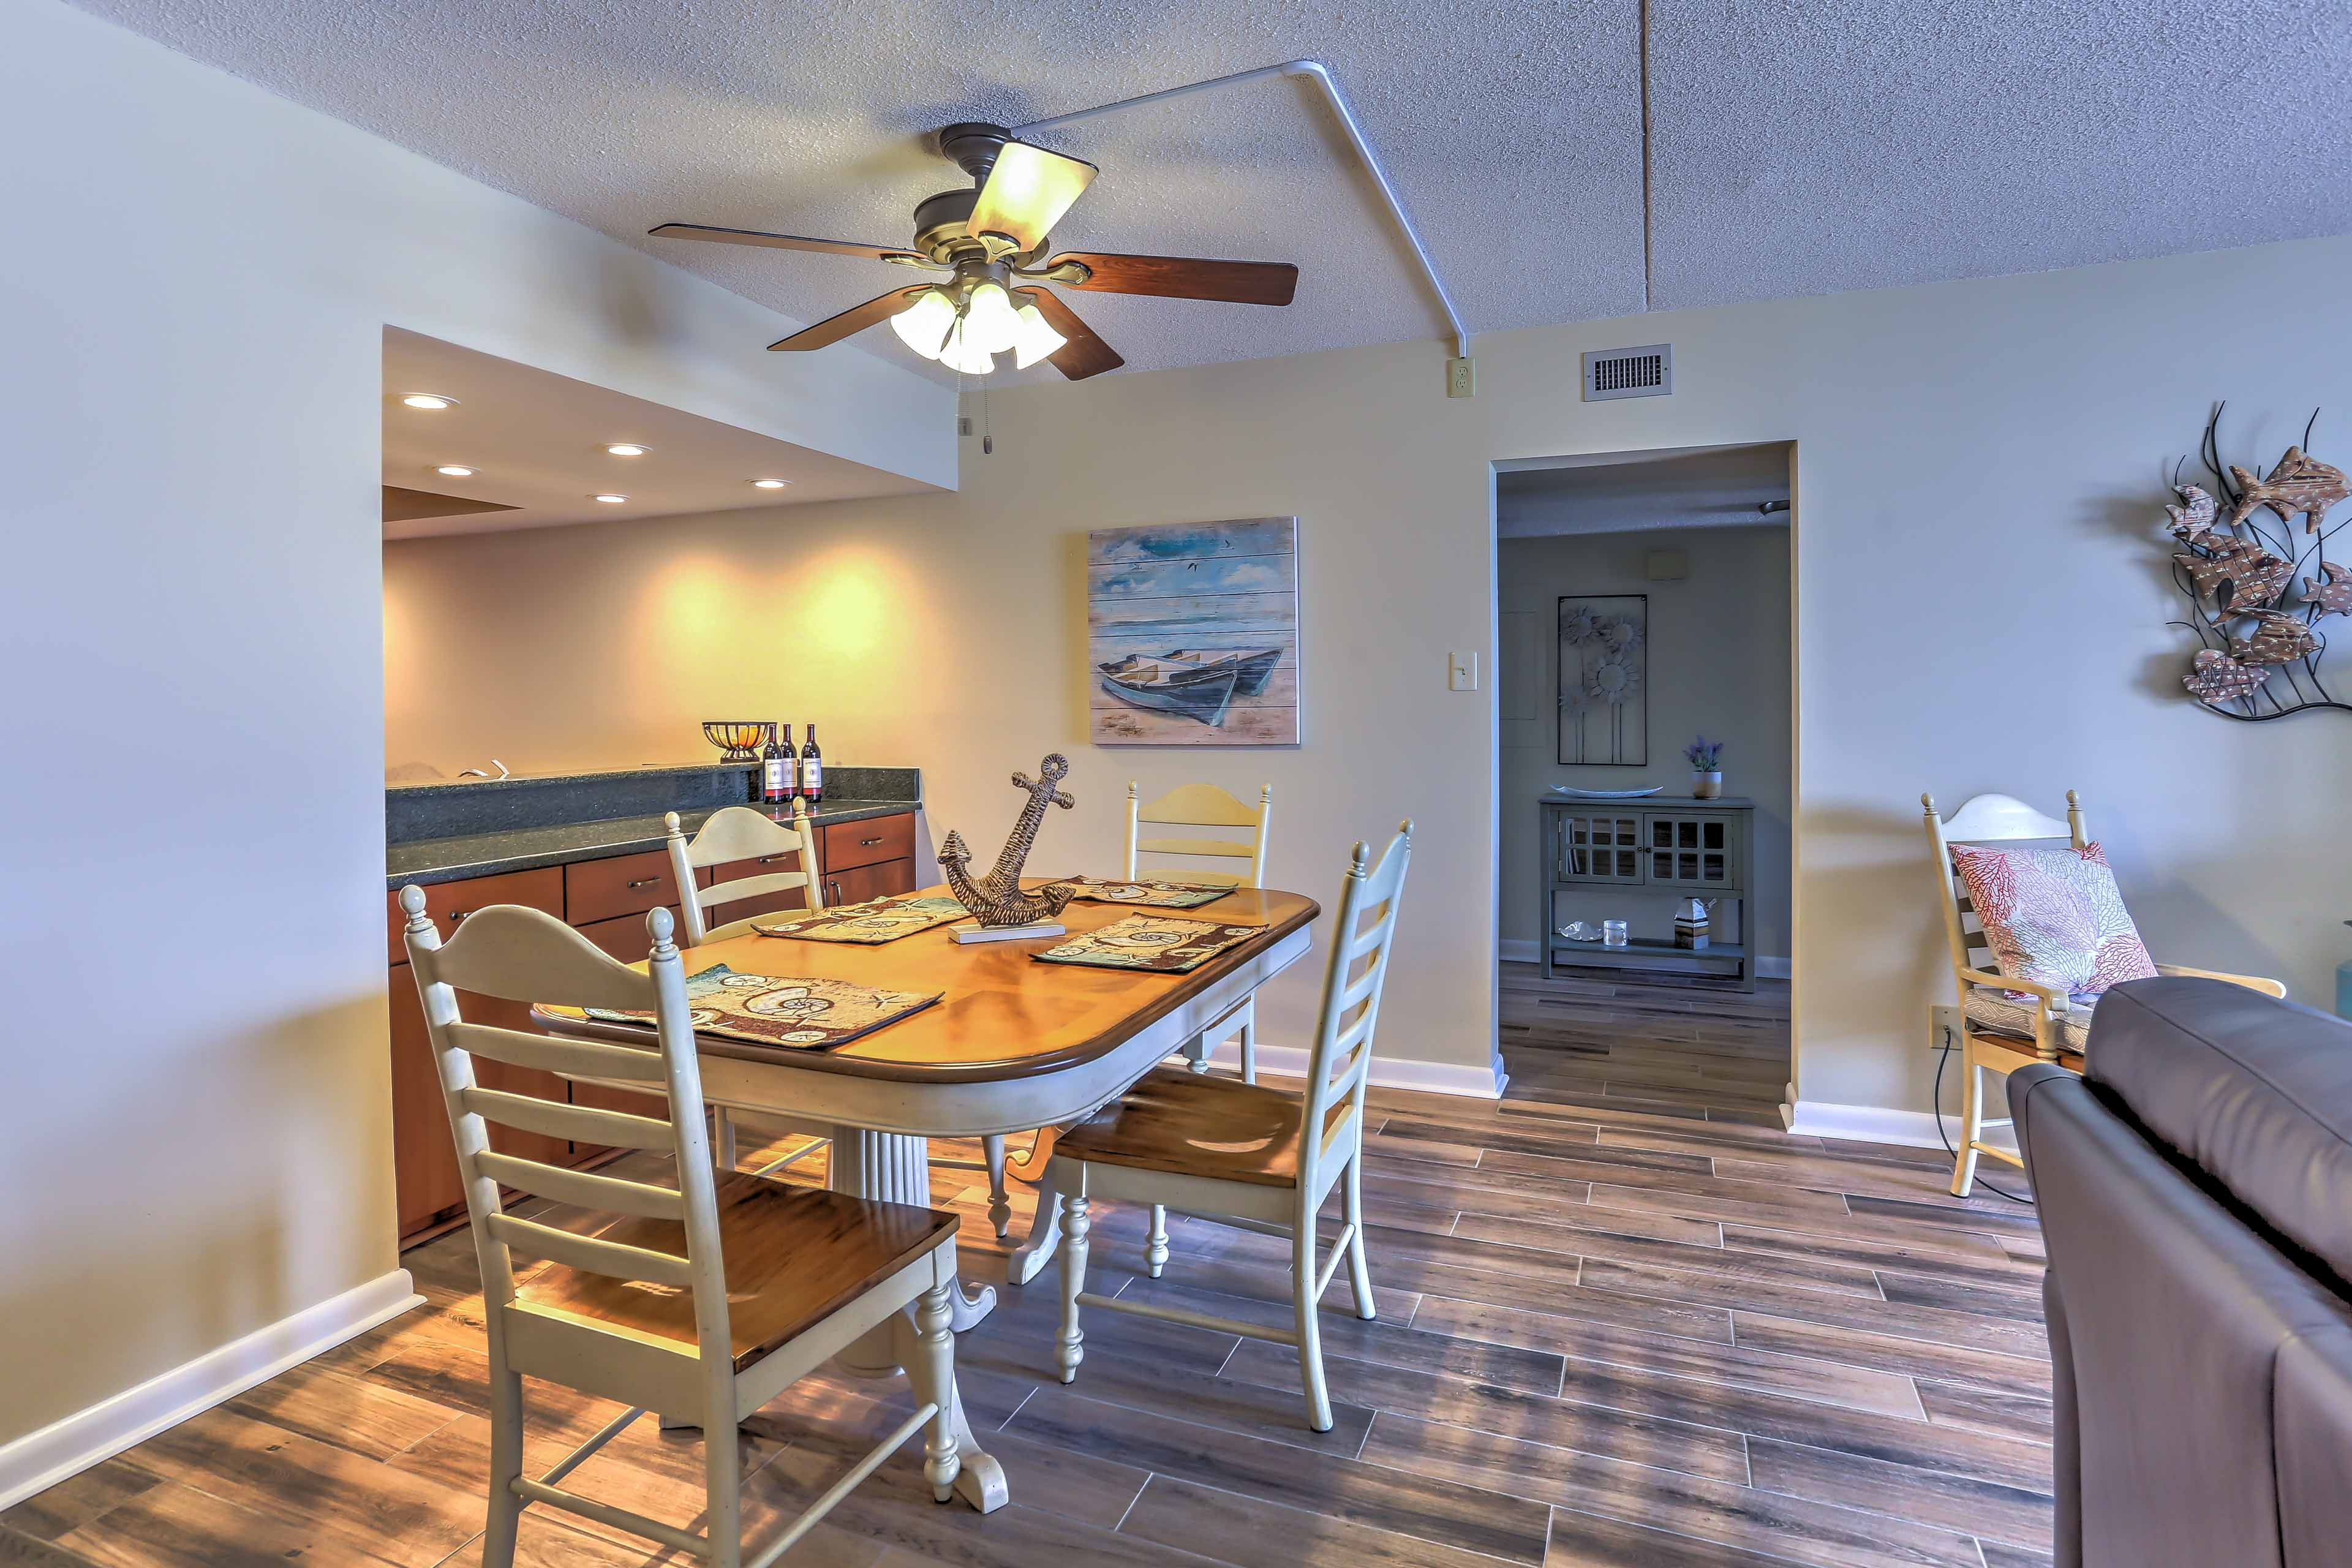 Sit down for a home-made meal at the formal dining table.